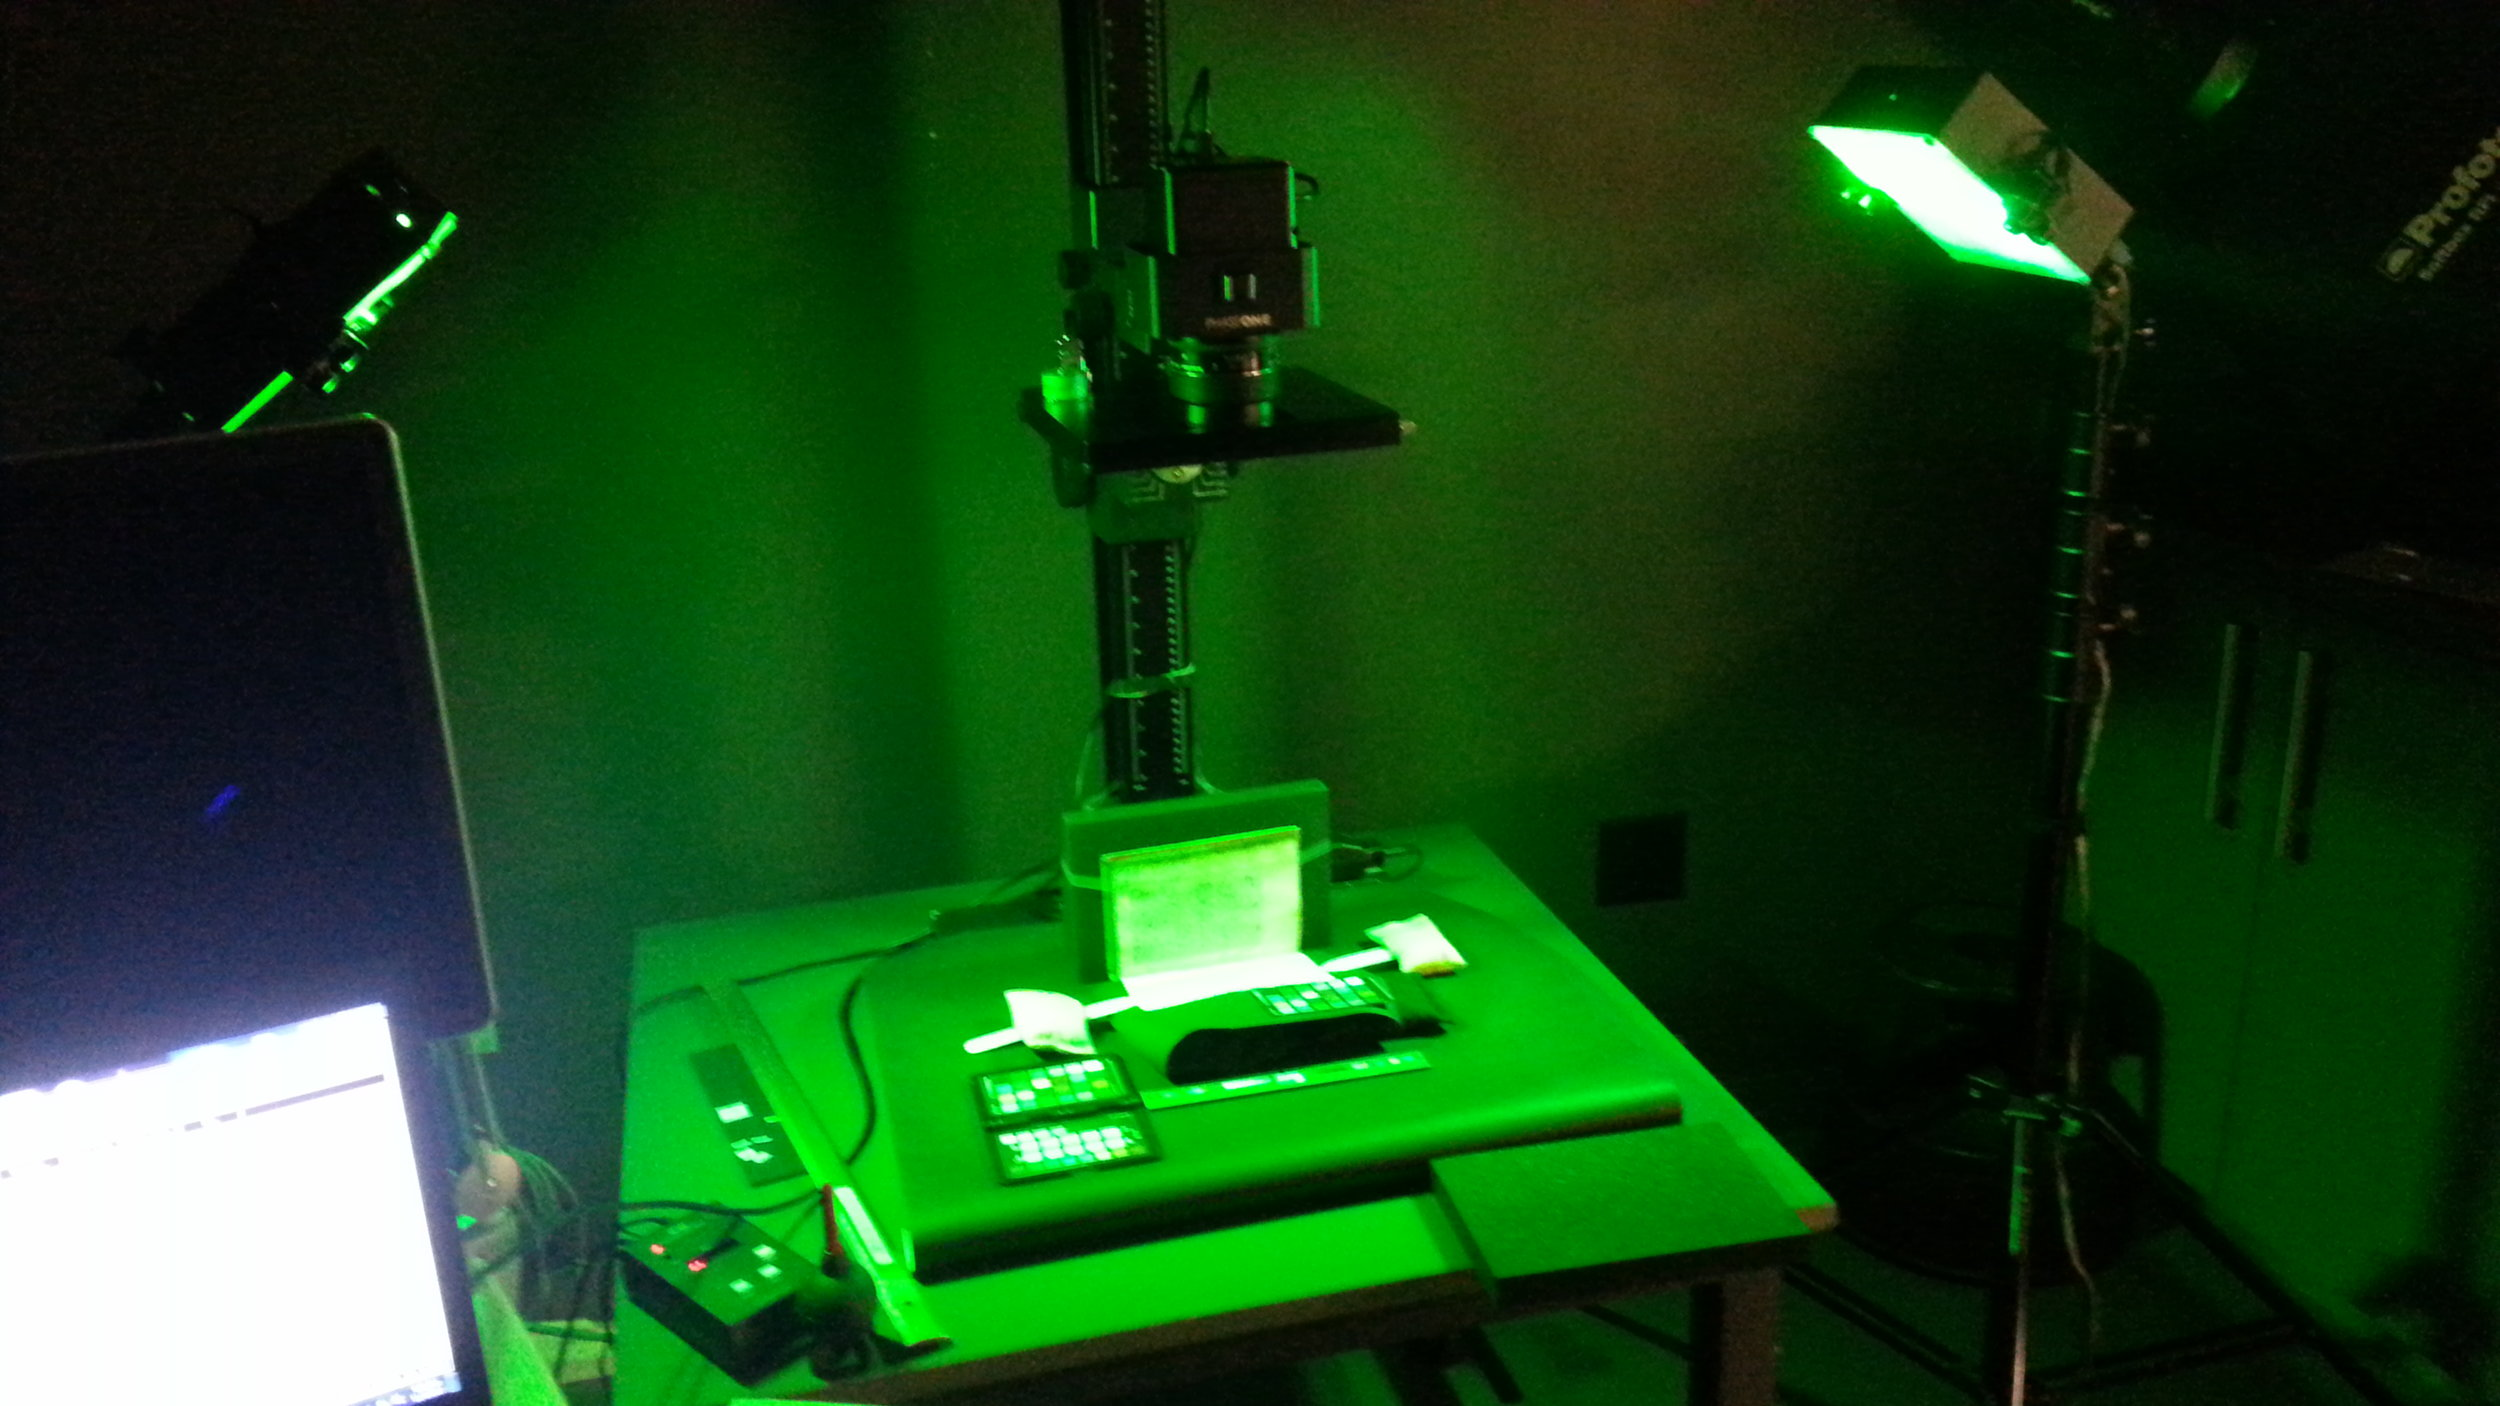 Multispectral imaging of a medieval manuscript—at this particular moment, with a wavelength that appears as green to the human eye. (Part of the Library of Stains imaging process.)